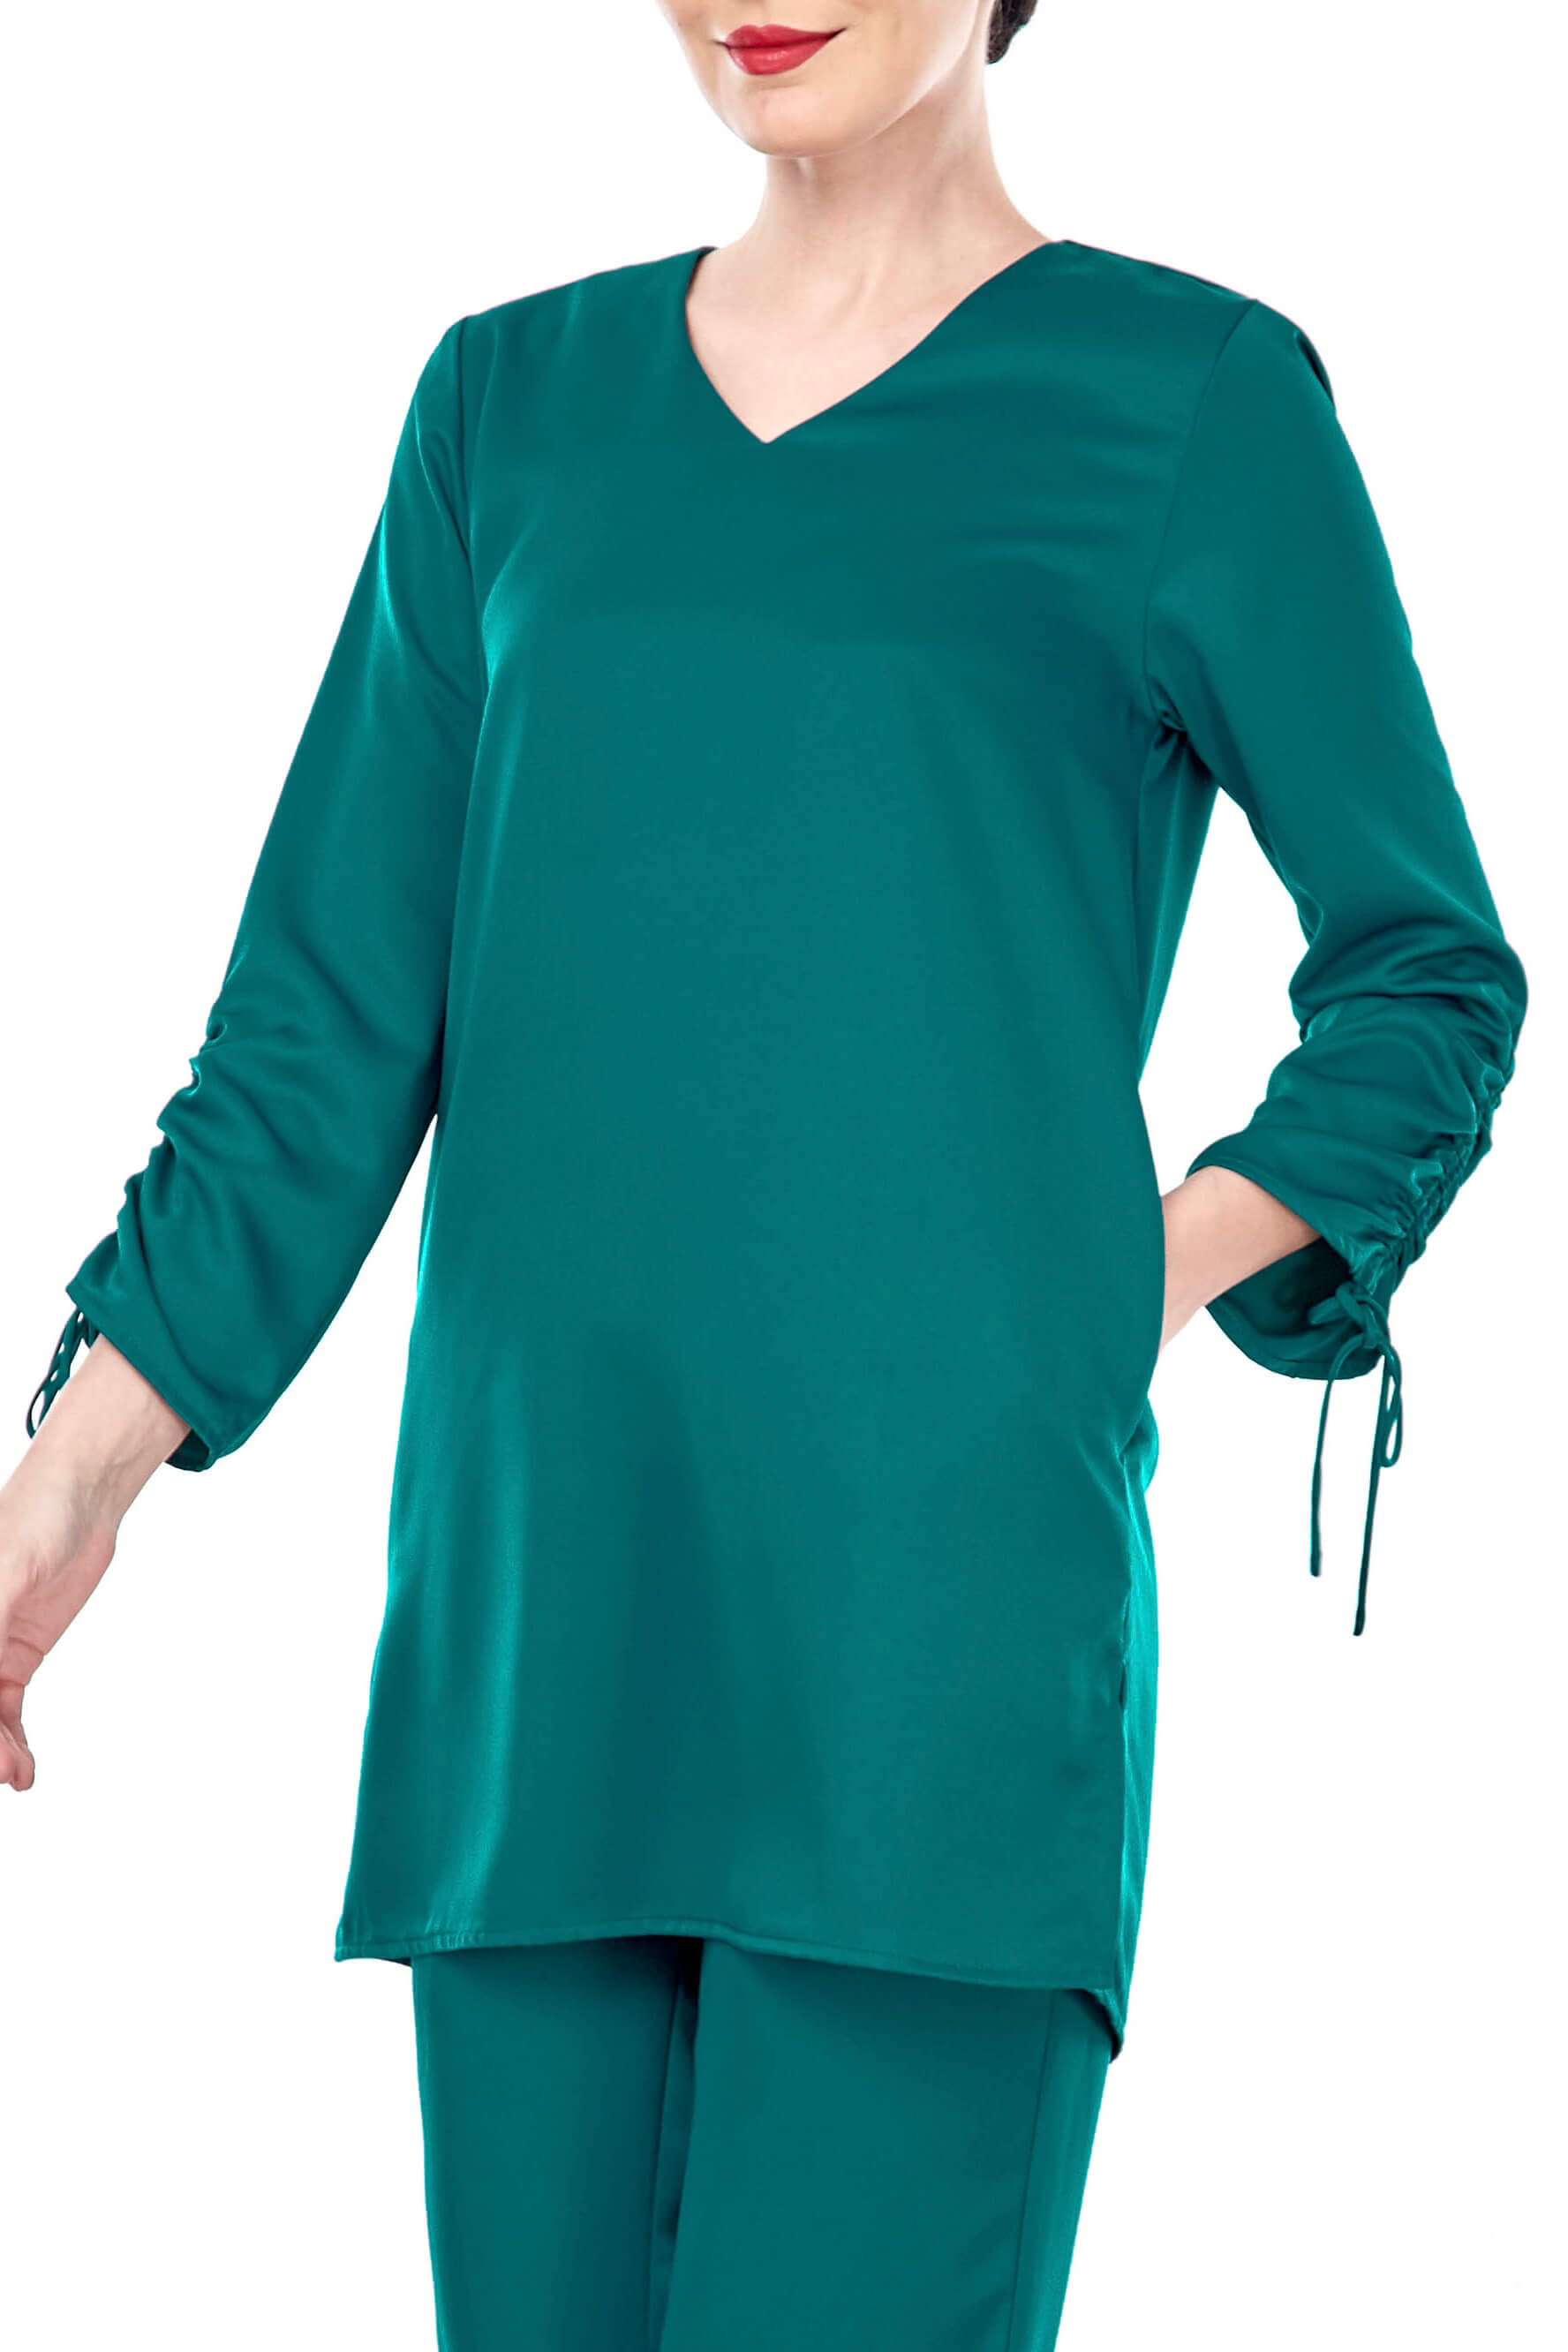 Rayqa Teal Blouse 3